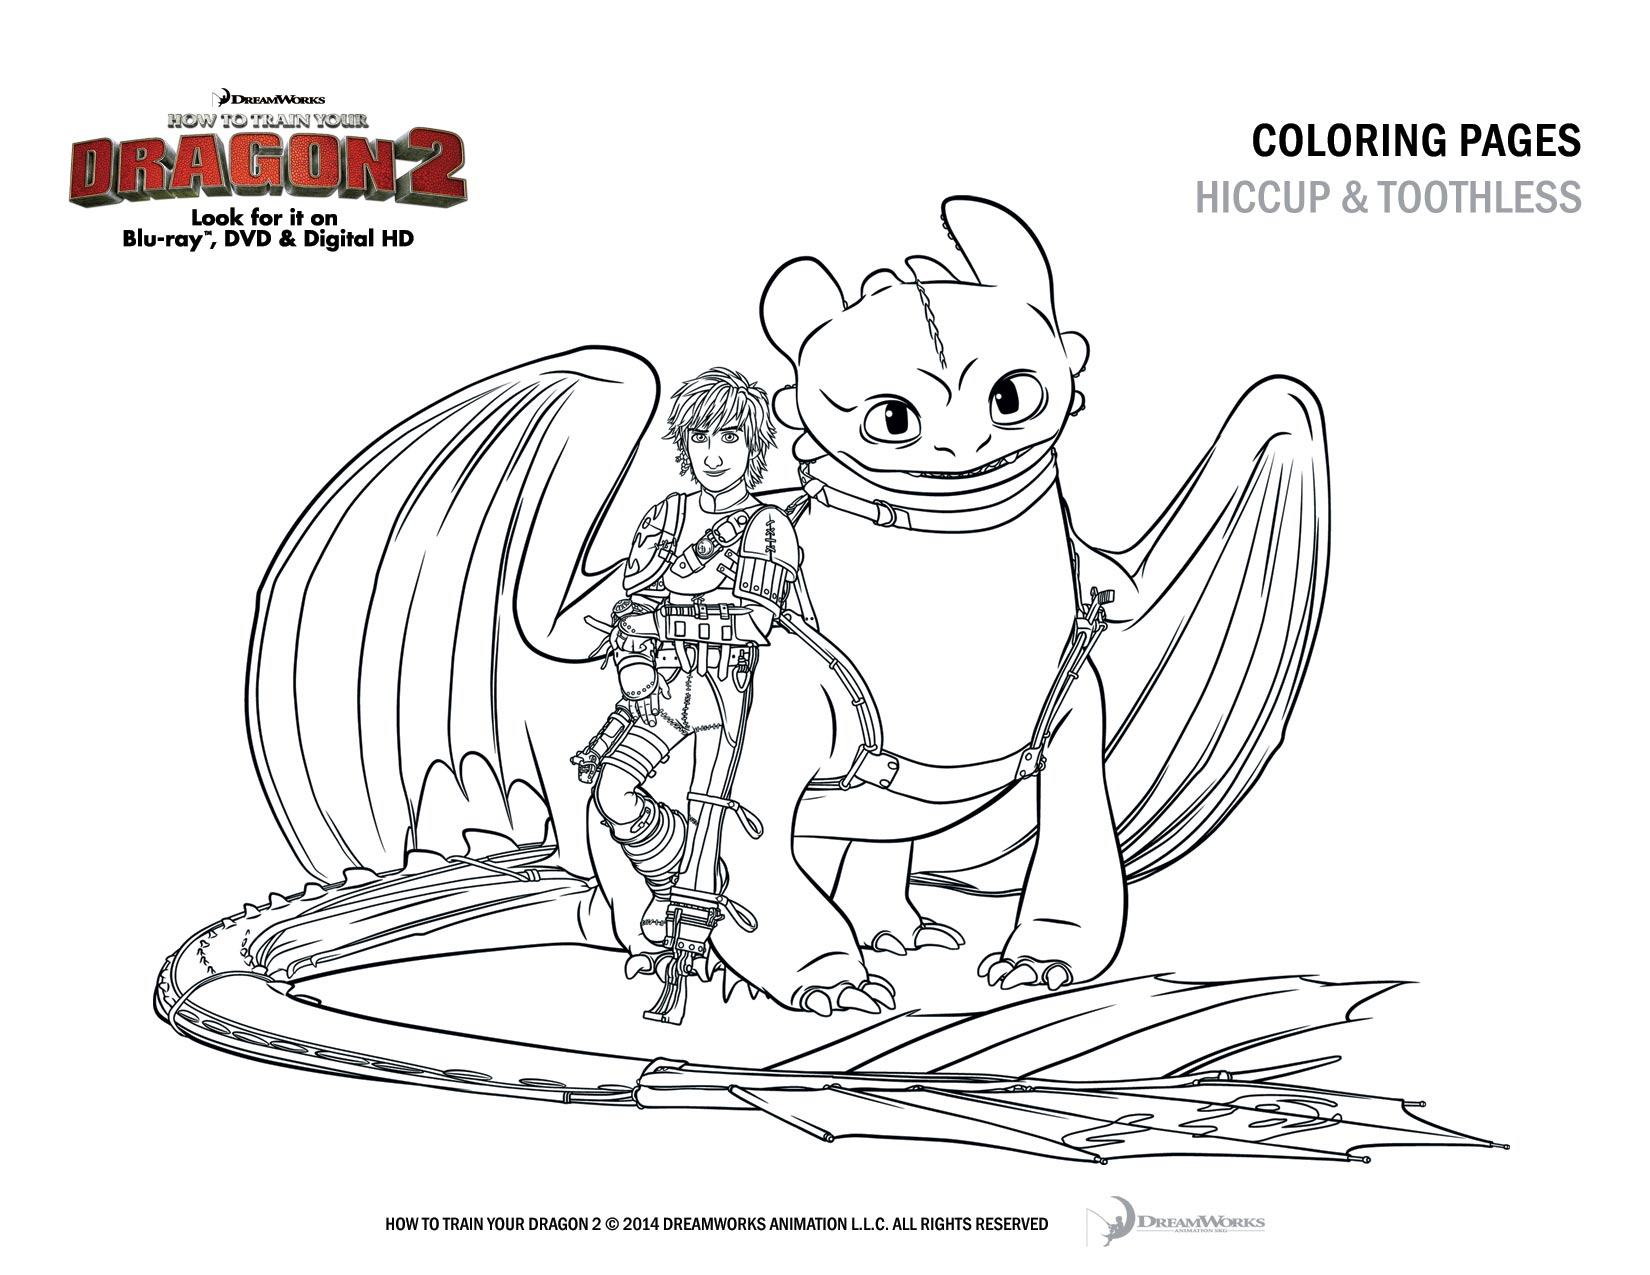 coloring1 coloring2 coloring3 - Coloring Activity Pages